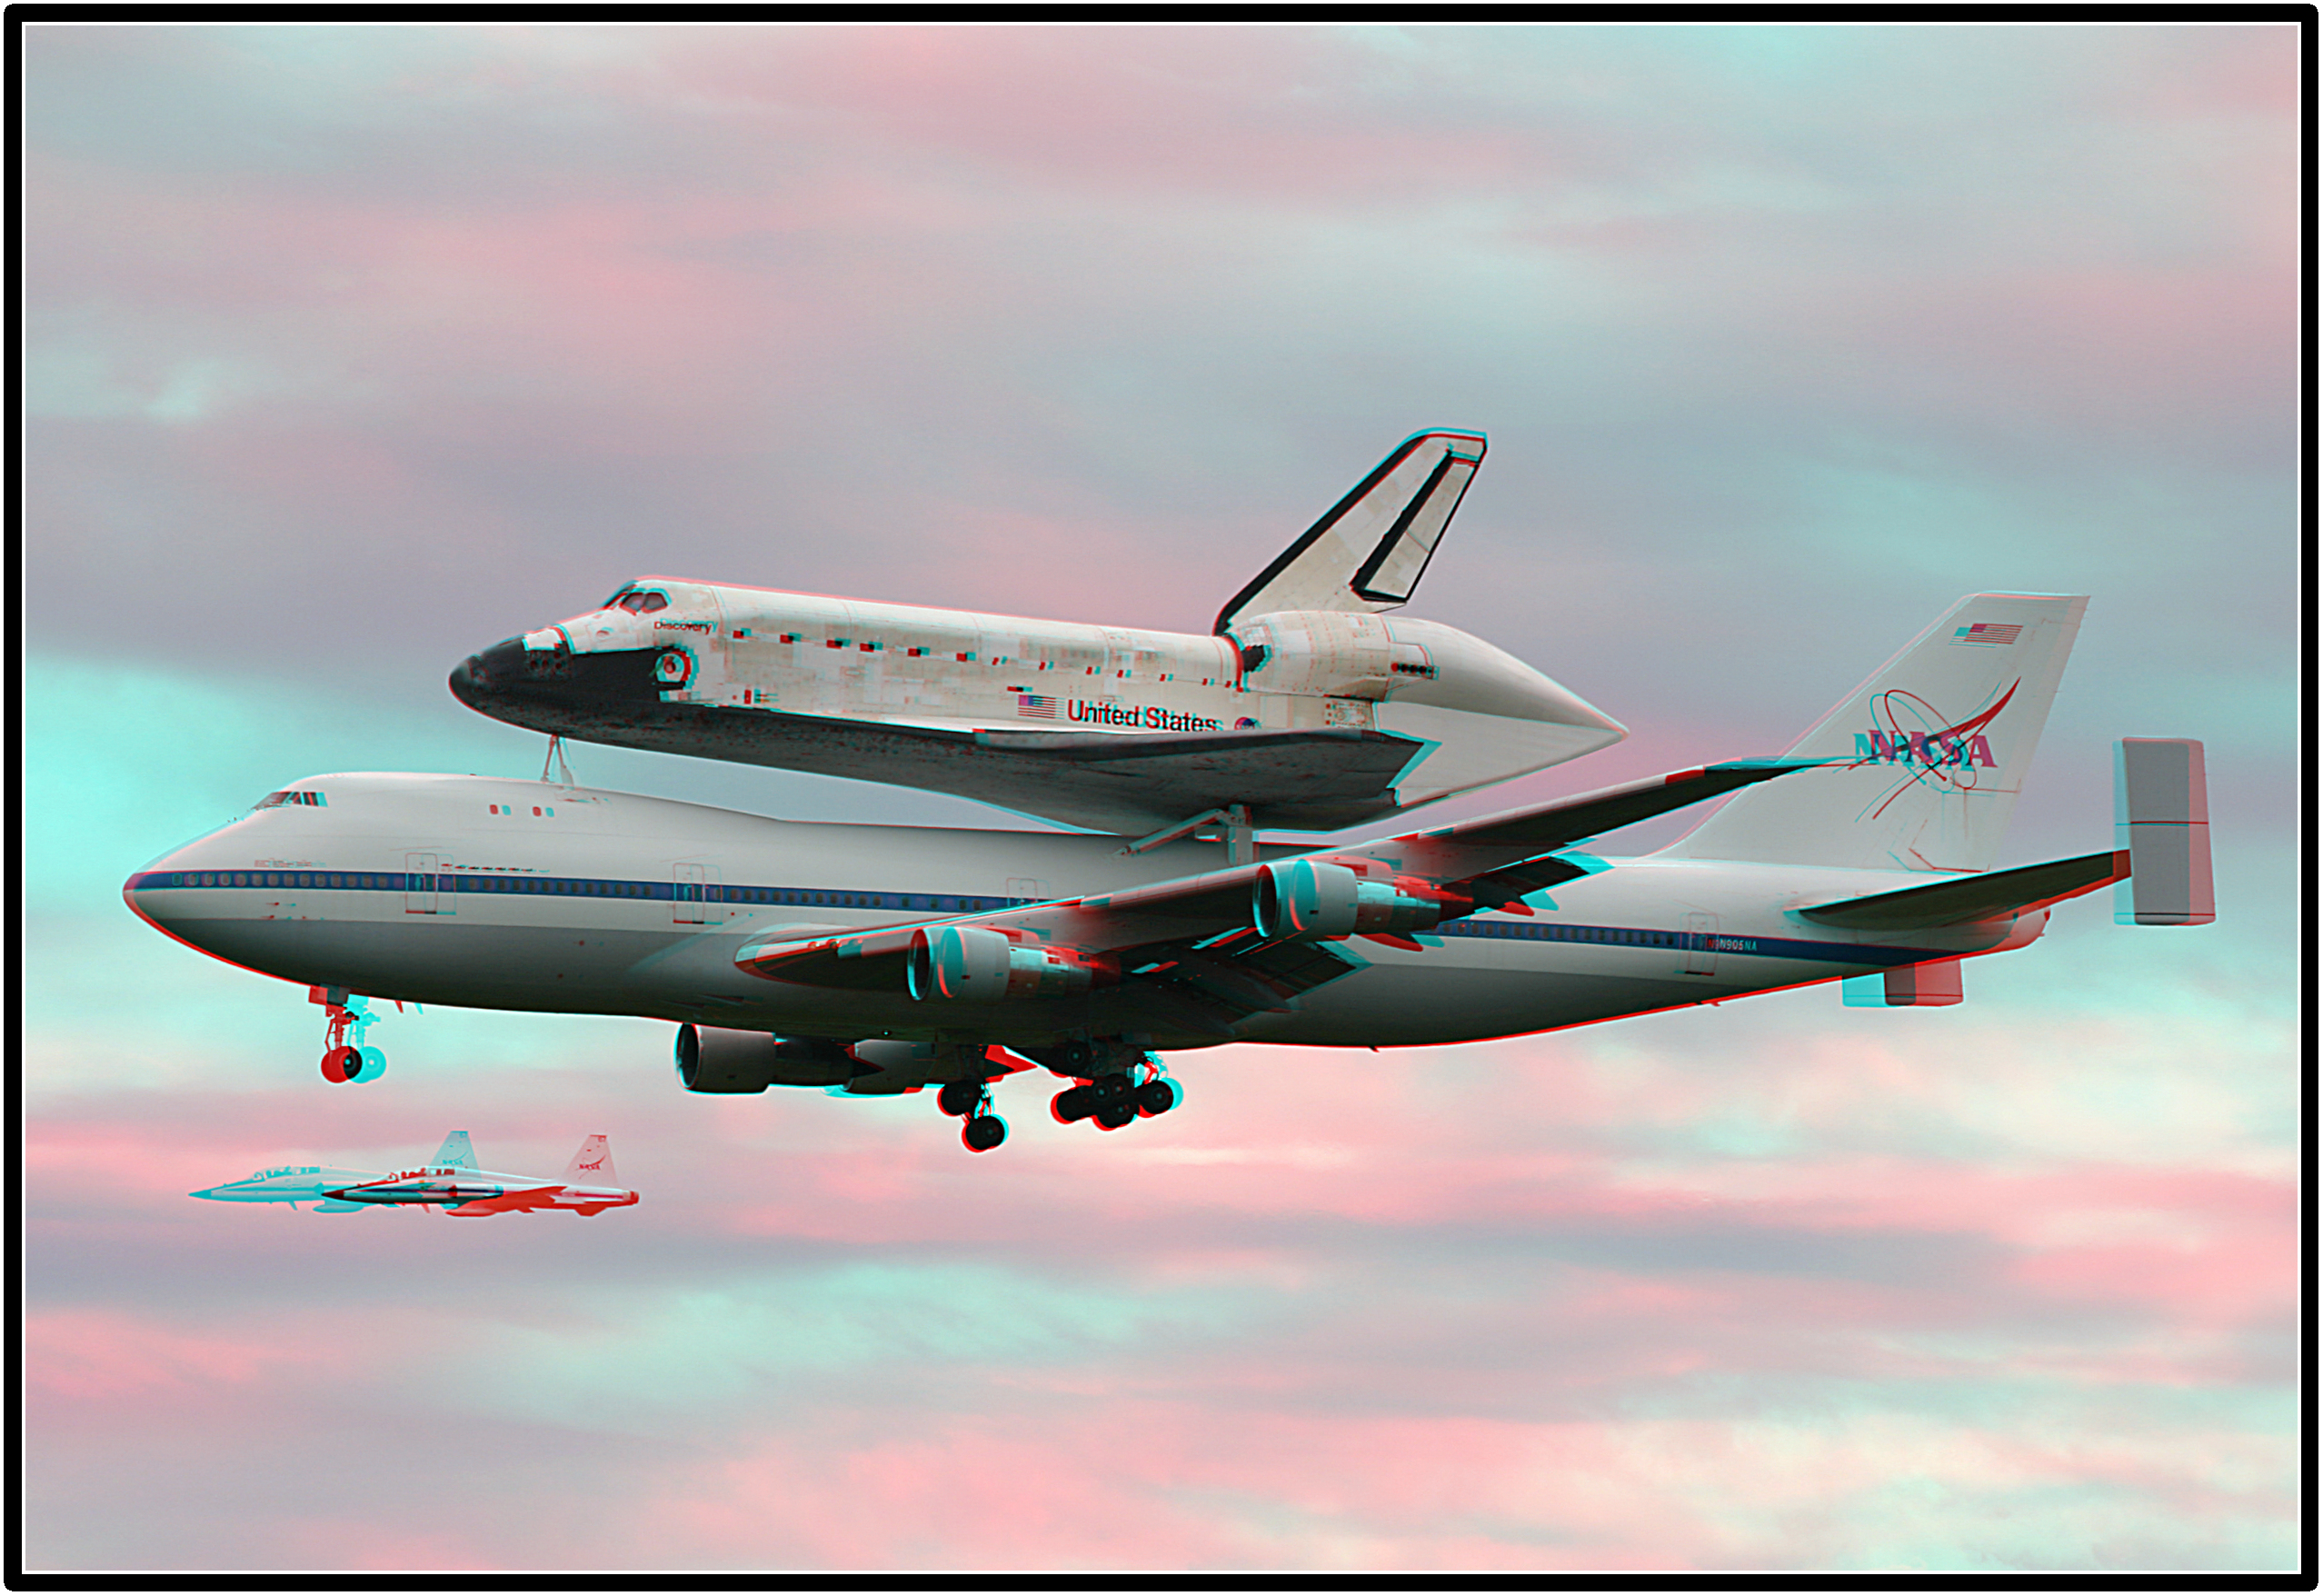 Discovery Lands at Dulles